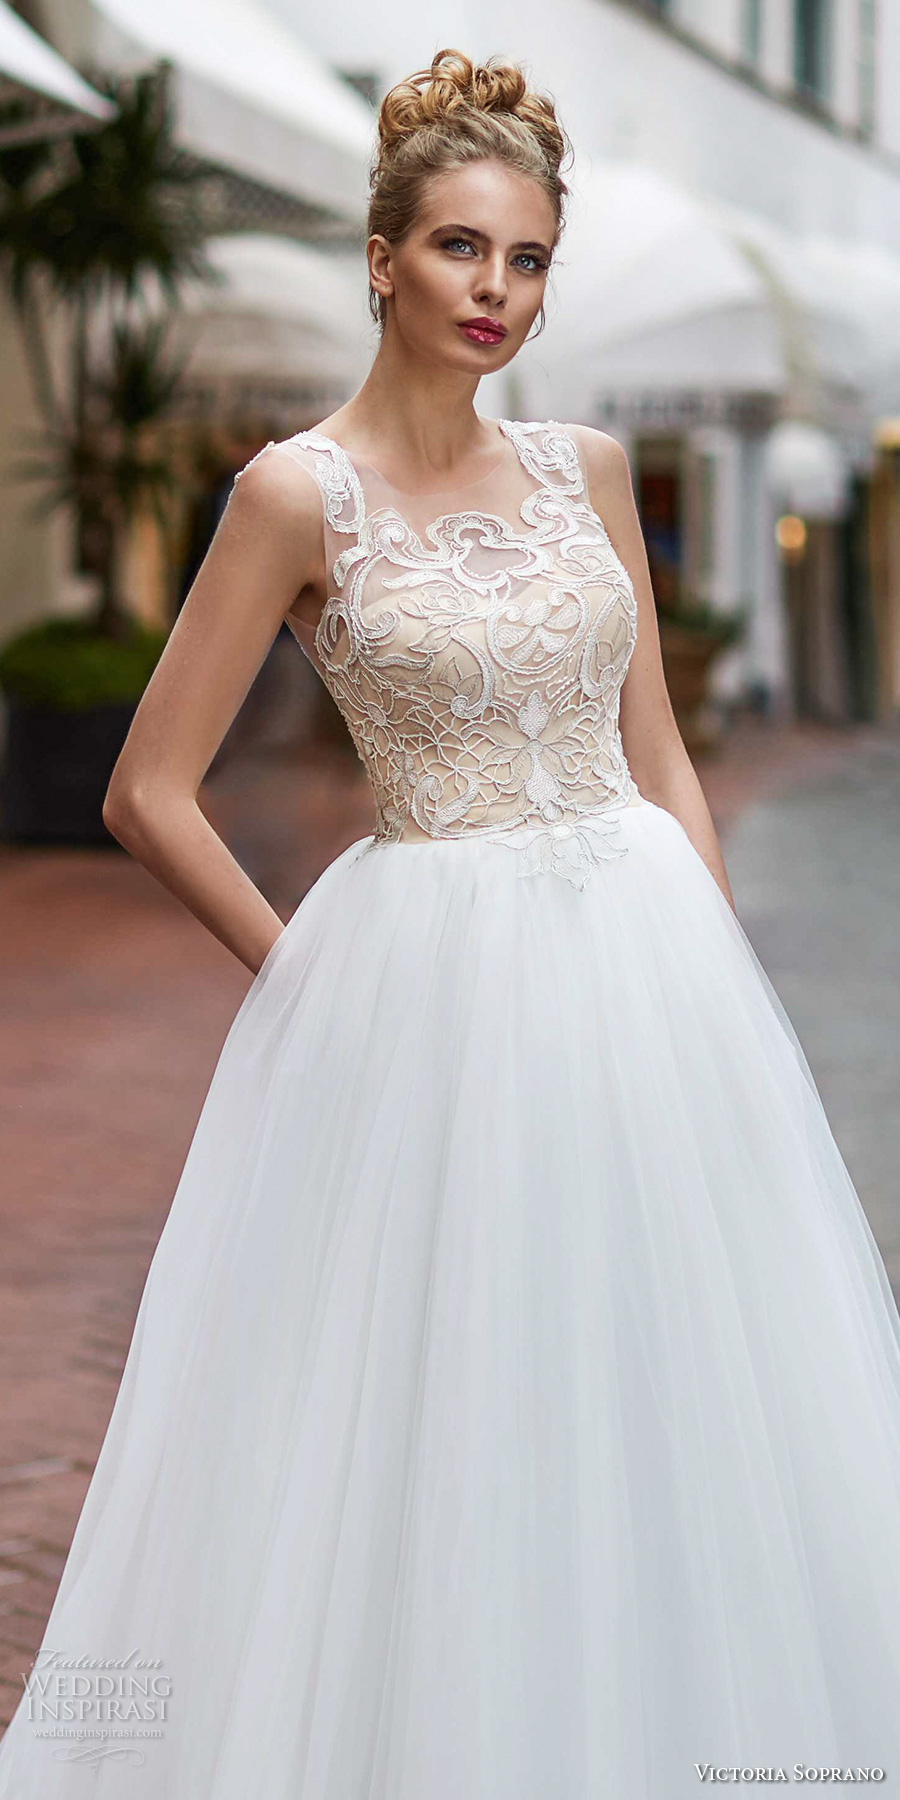 victoria soprano 2017 bridal sleeveless square neck heavily embellished bodice gold top tulle skirt romantic glamorous a  line wedding dress with pockets covered lace back sweep train (12) zv